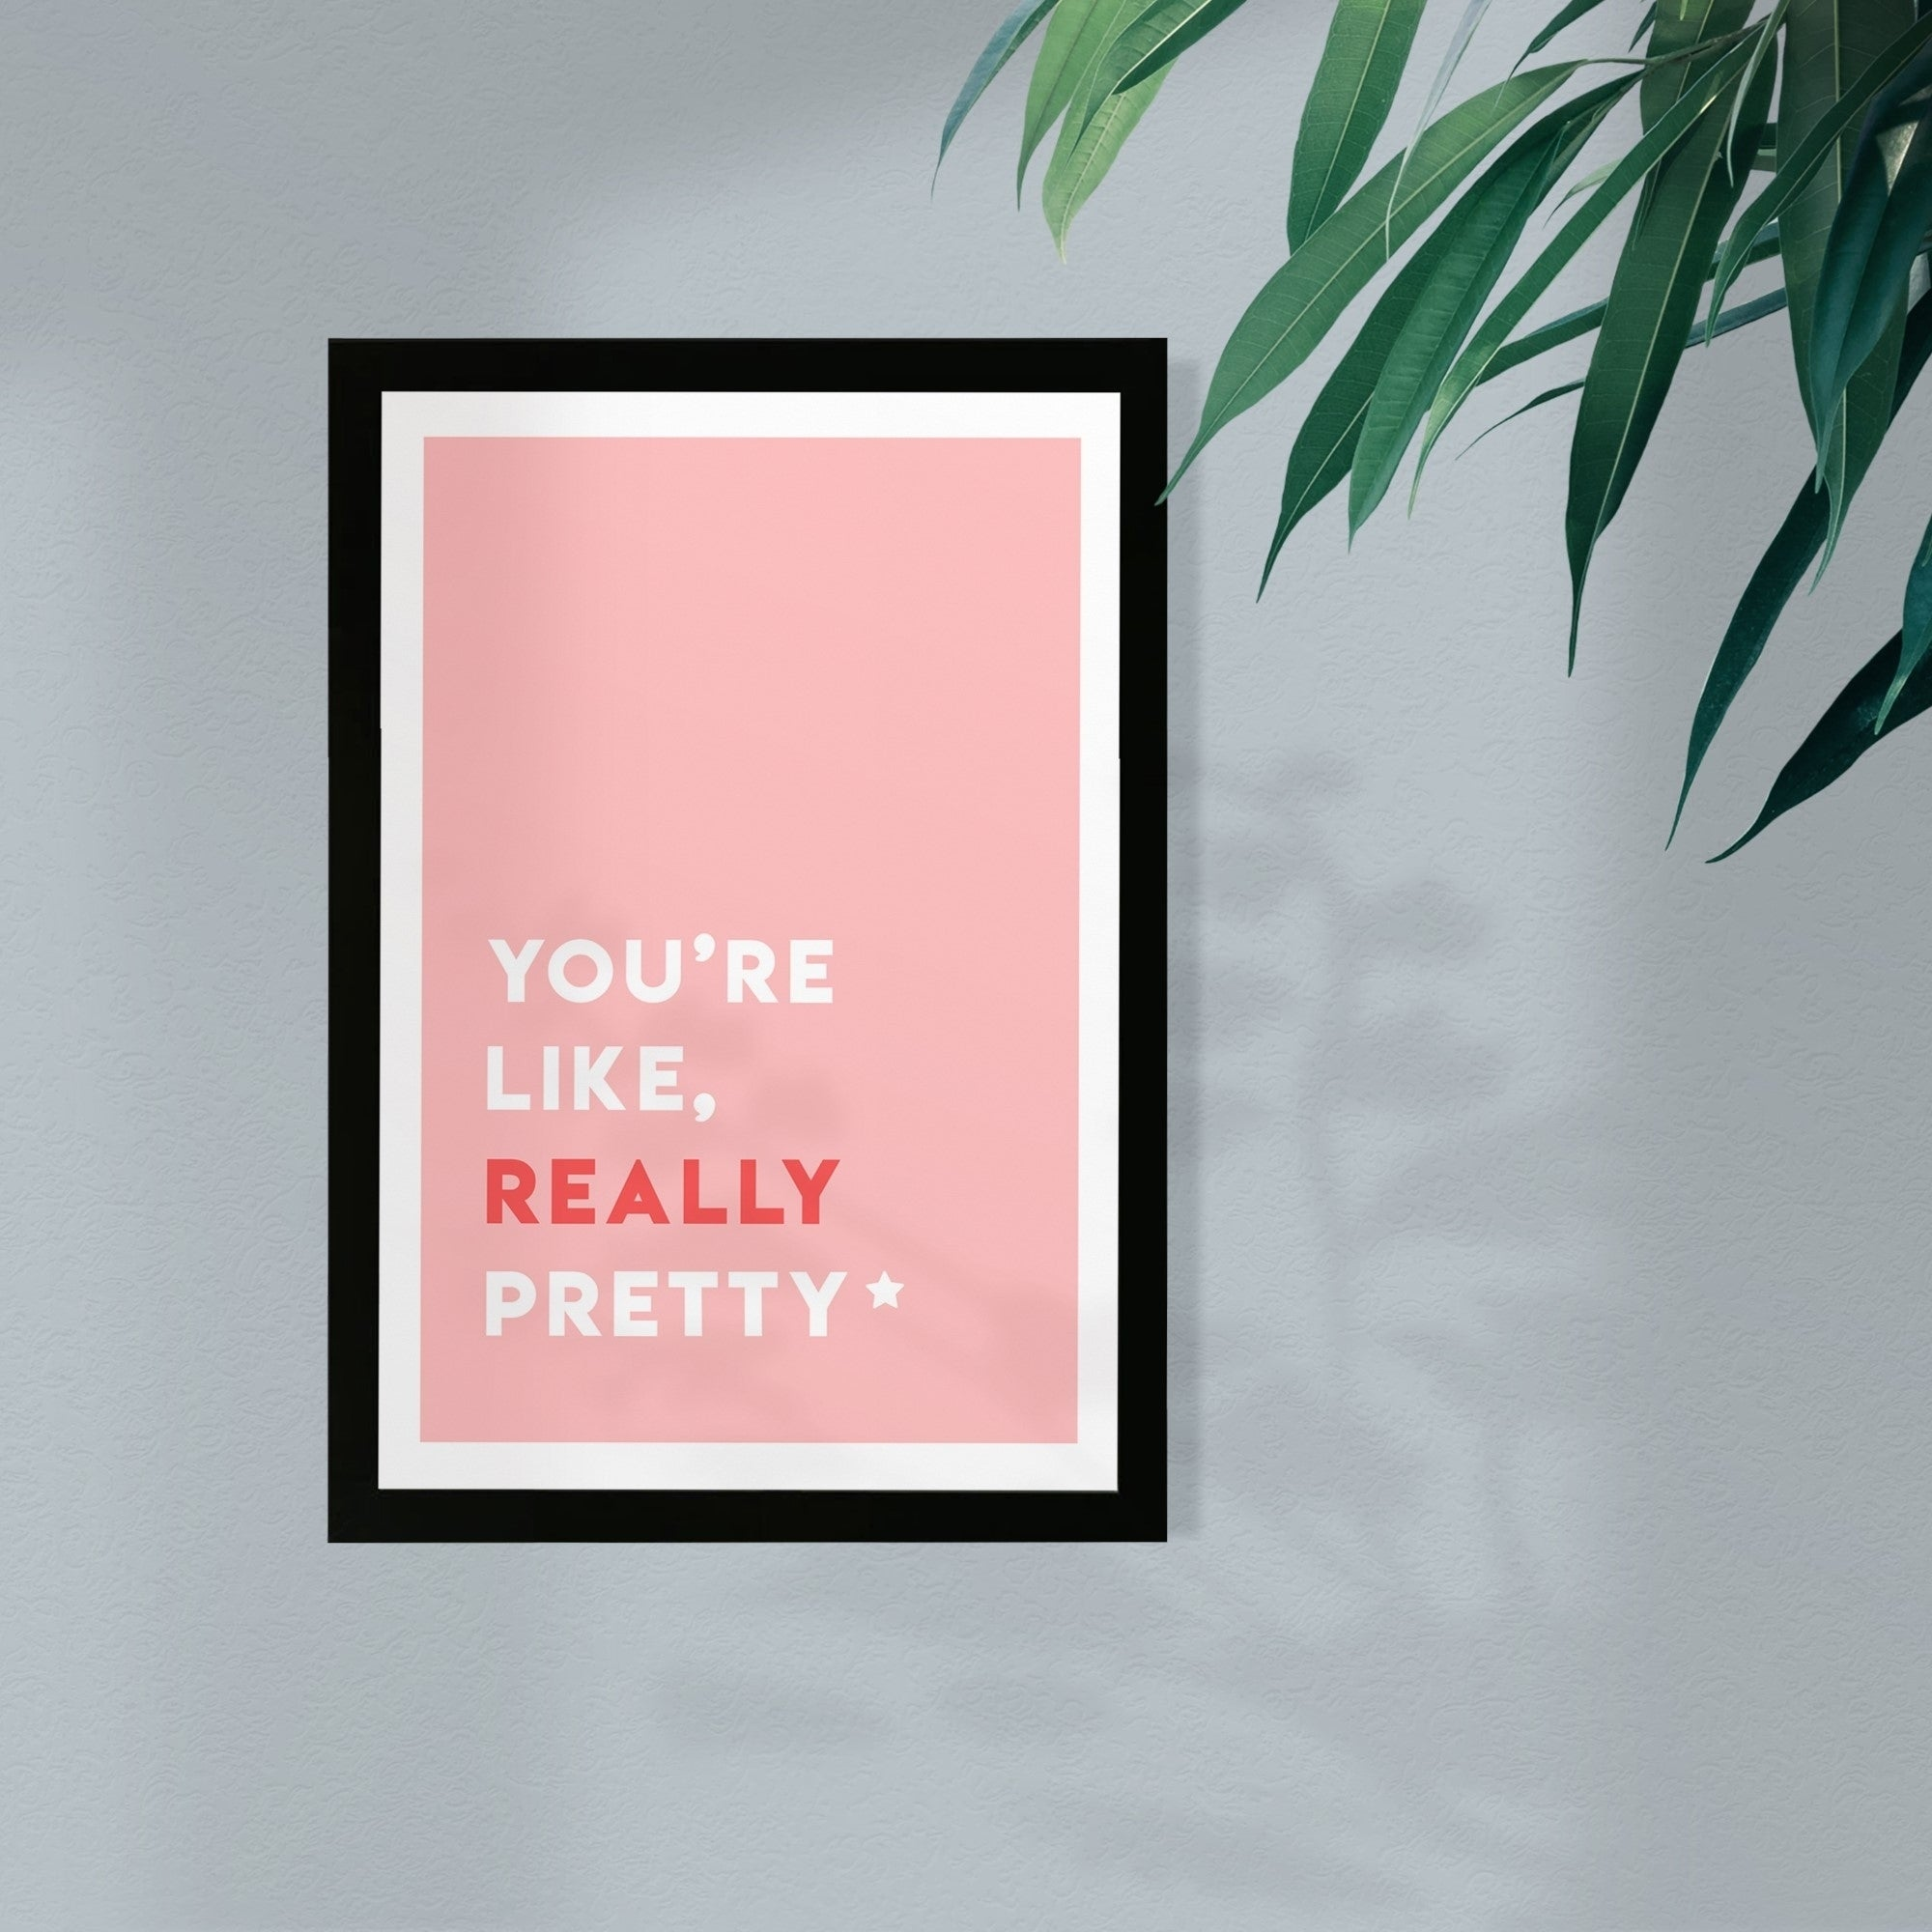 Shop Wynwood Studio Typography And Quotes Framed Wall Art Prints Really Pretty Beauty Quotes And Sayings Home Decor Pink White Overstock 30249093